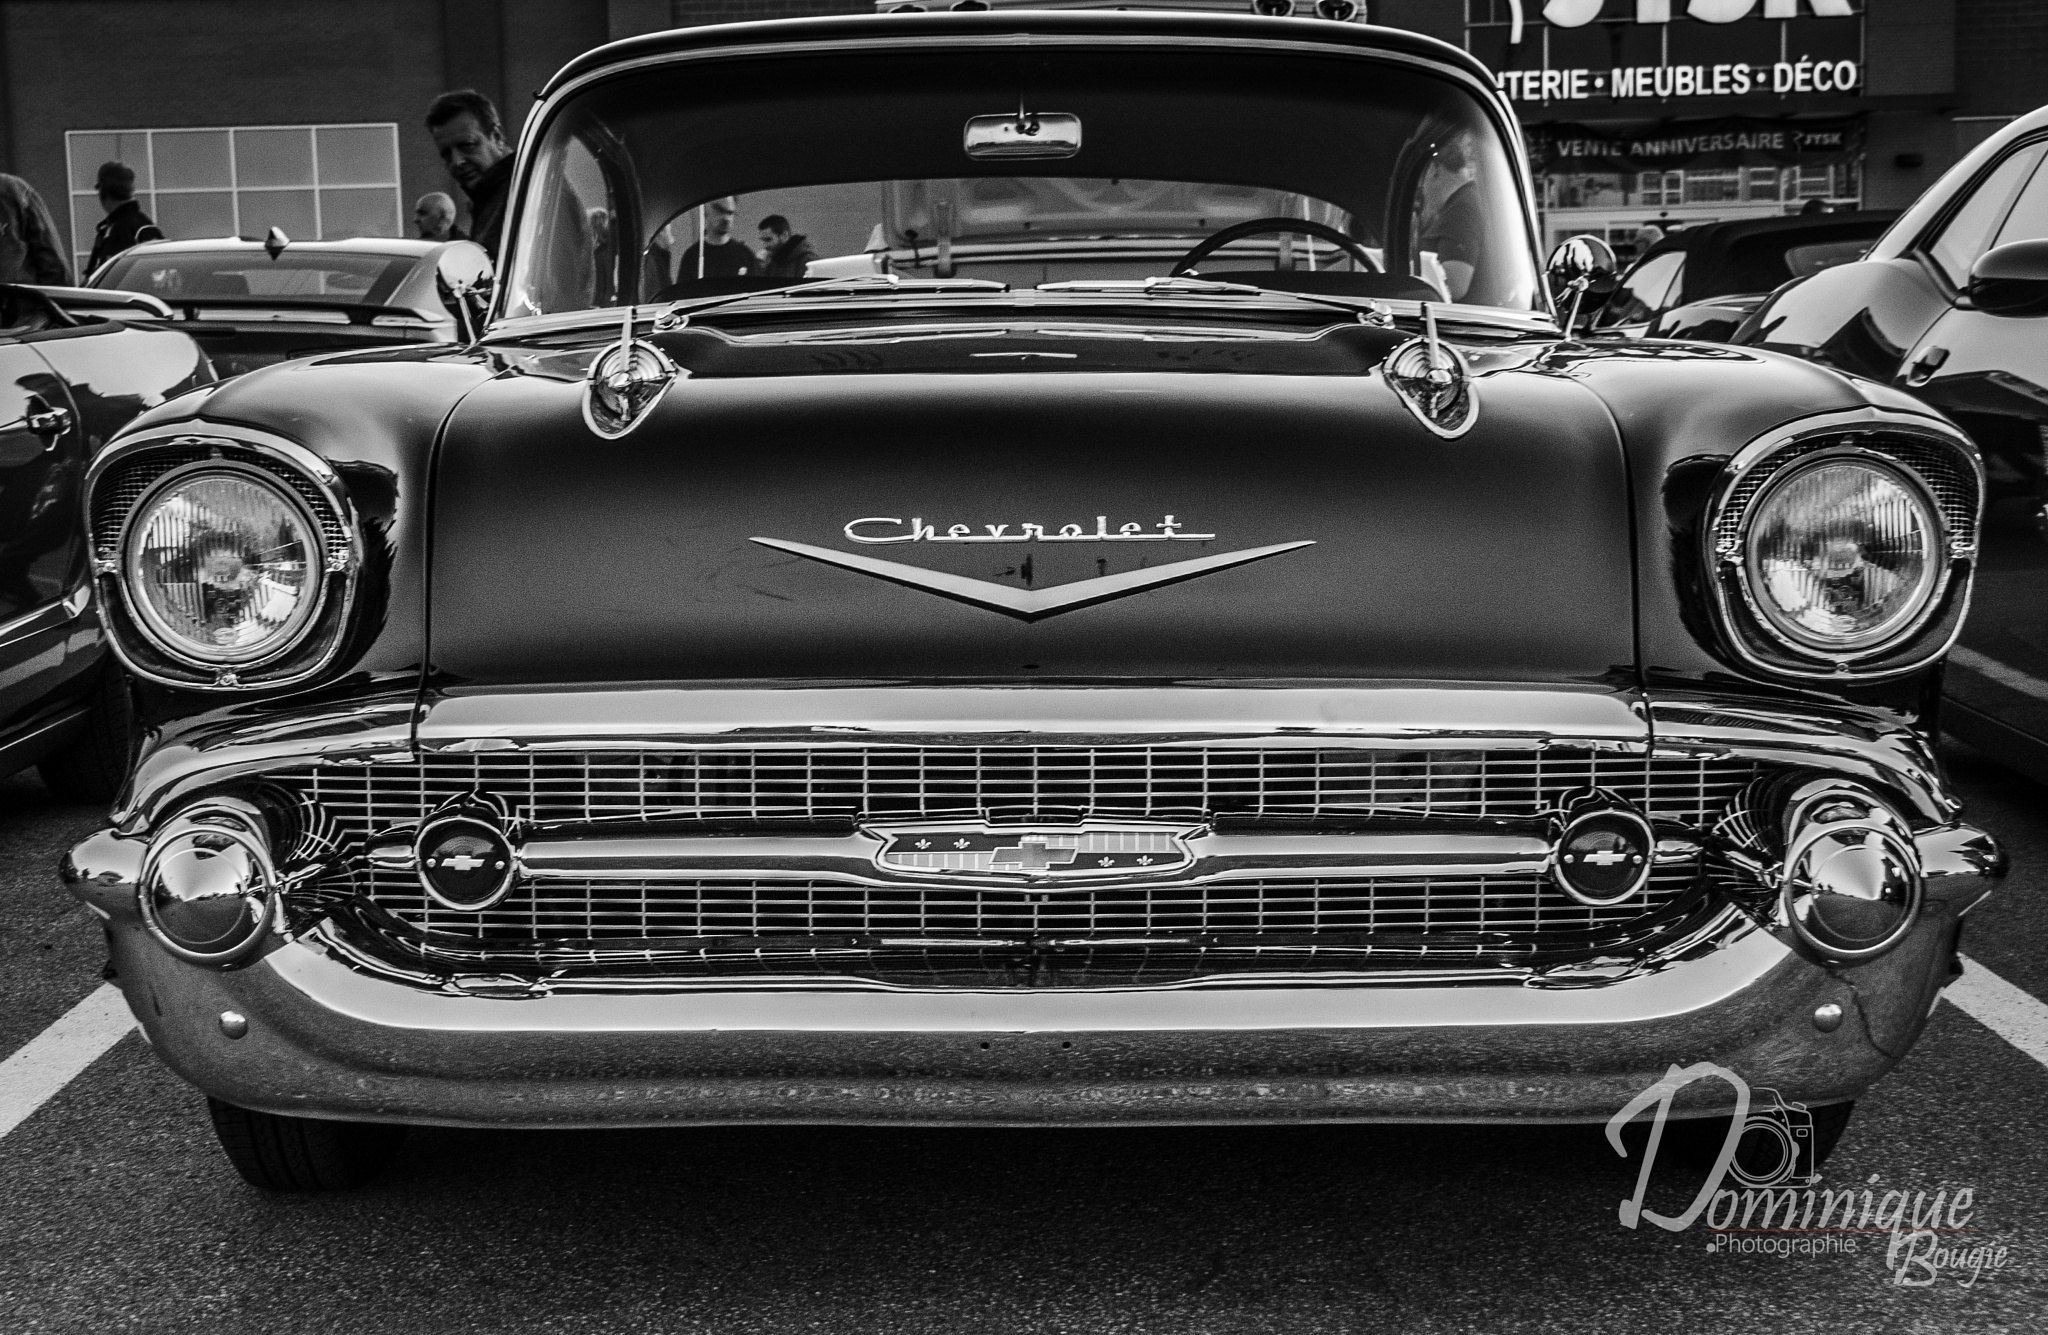 Chevrolet by dominique.bougie.98